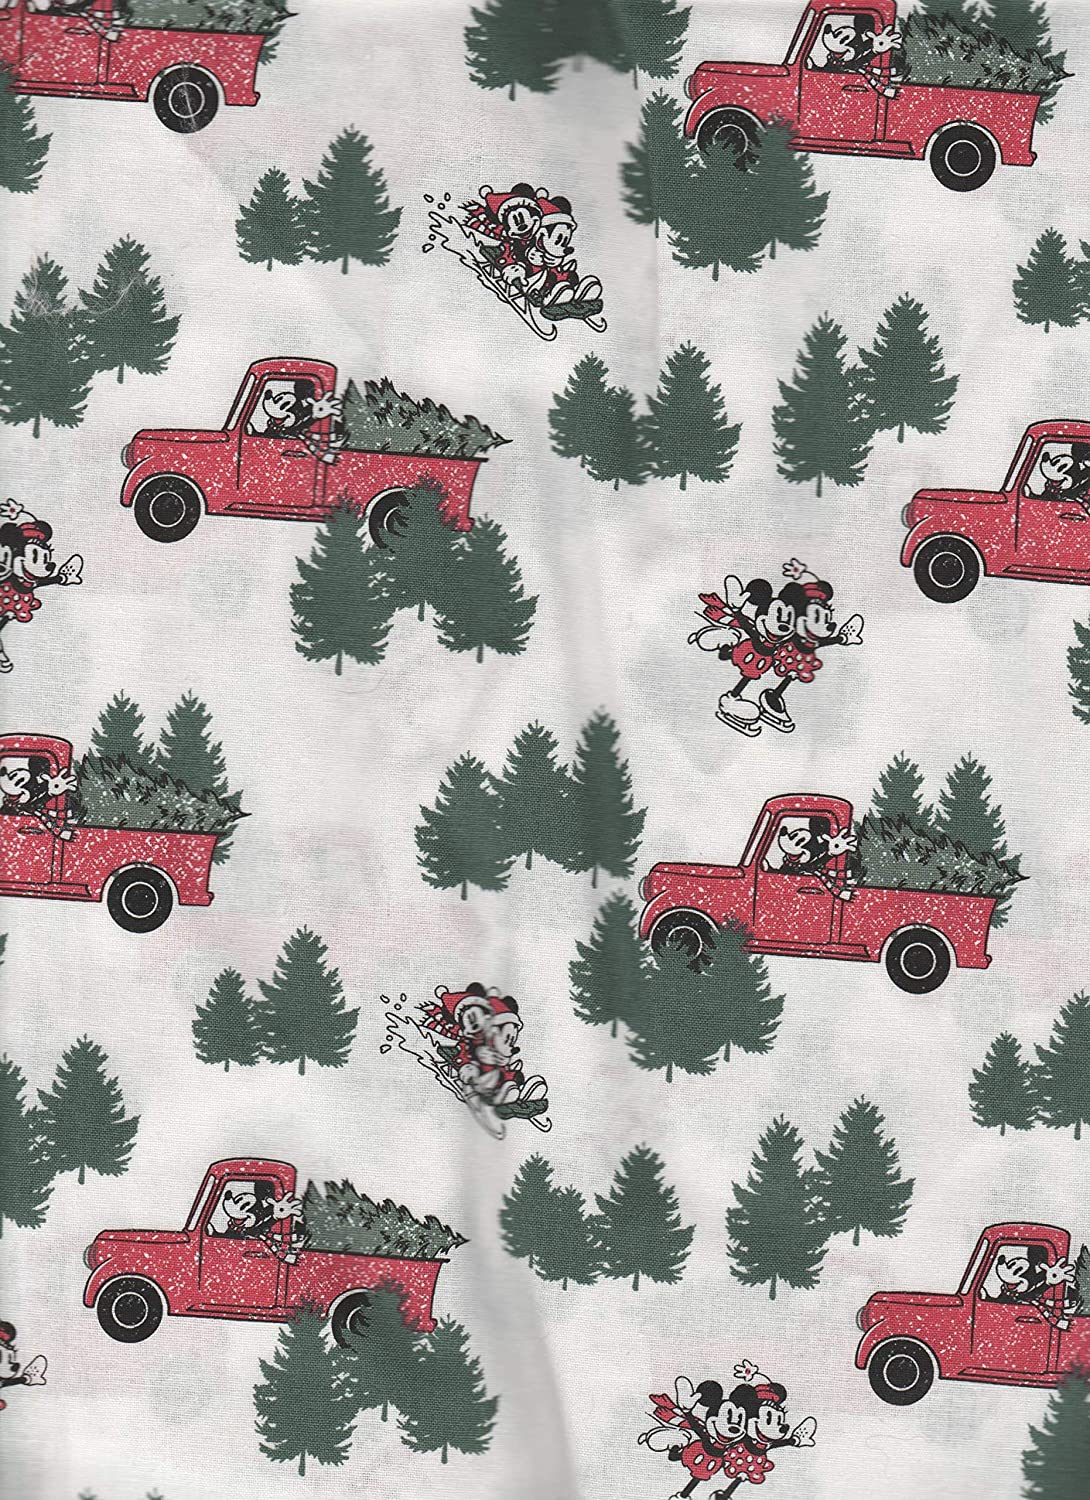 Amazon Com Minnie Mickey Mouse Christmas Red Truck Fabric Window Curtain Topper Valance Handmade